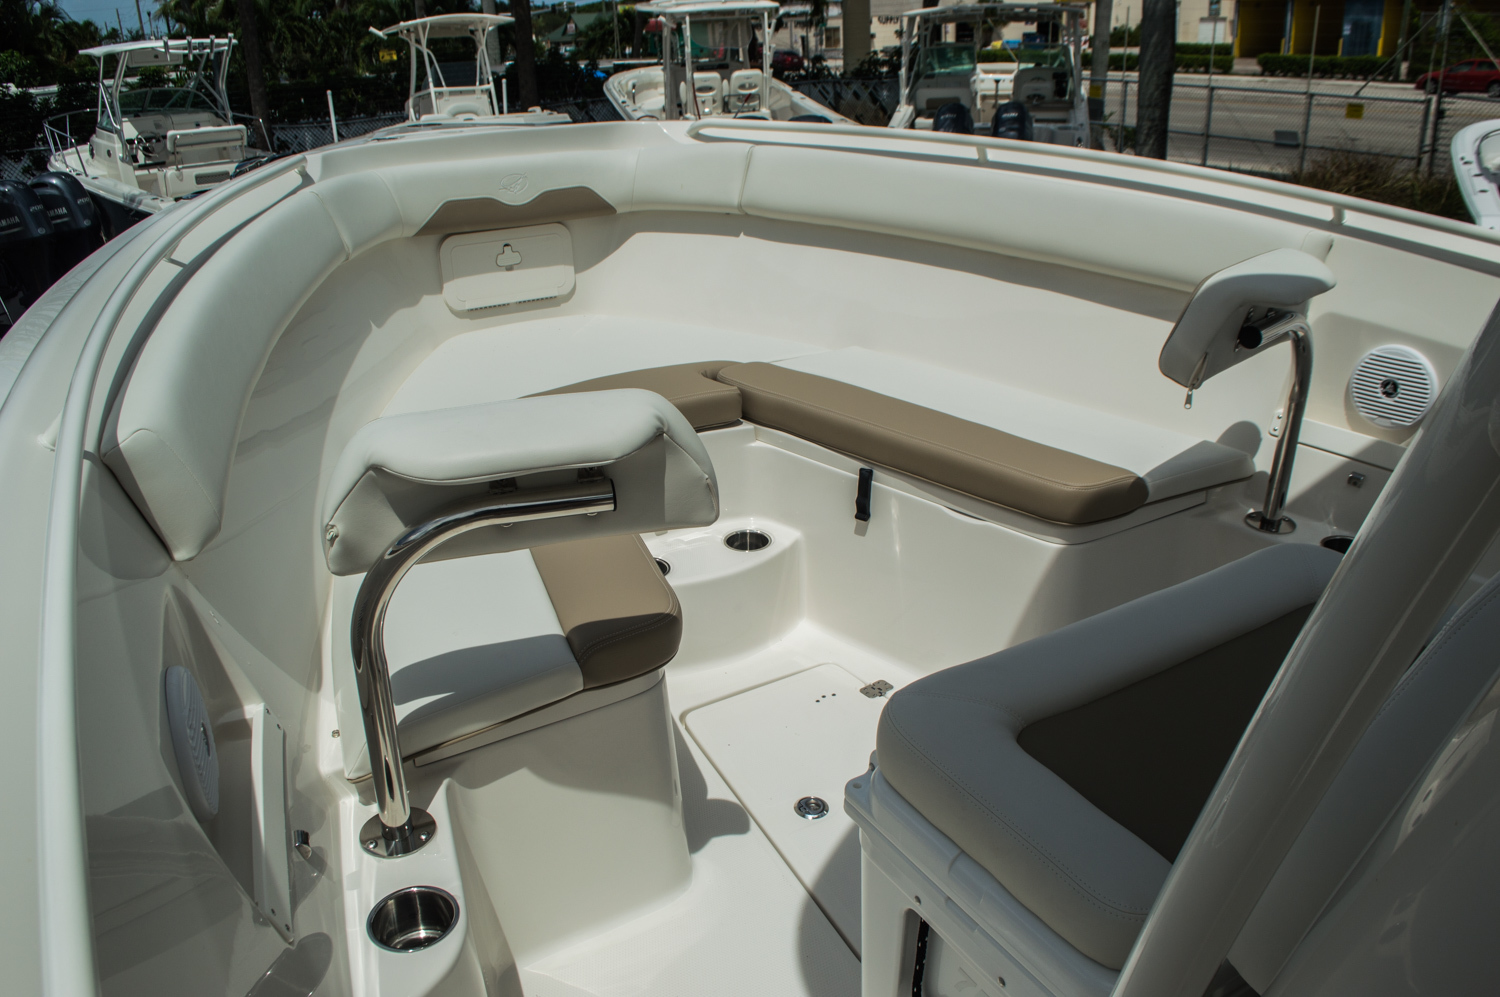 Thumbnail 10 for New 2016 Sailfish 270 CC Center Console boat for sale in West Palm Beach, FL